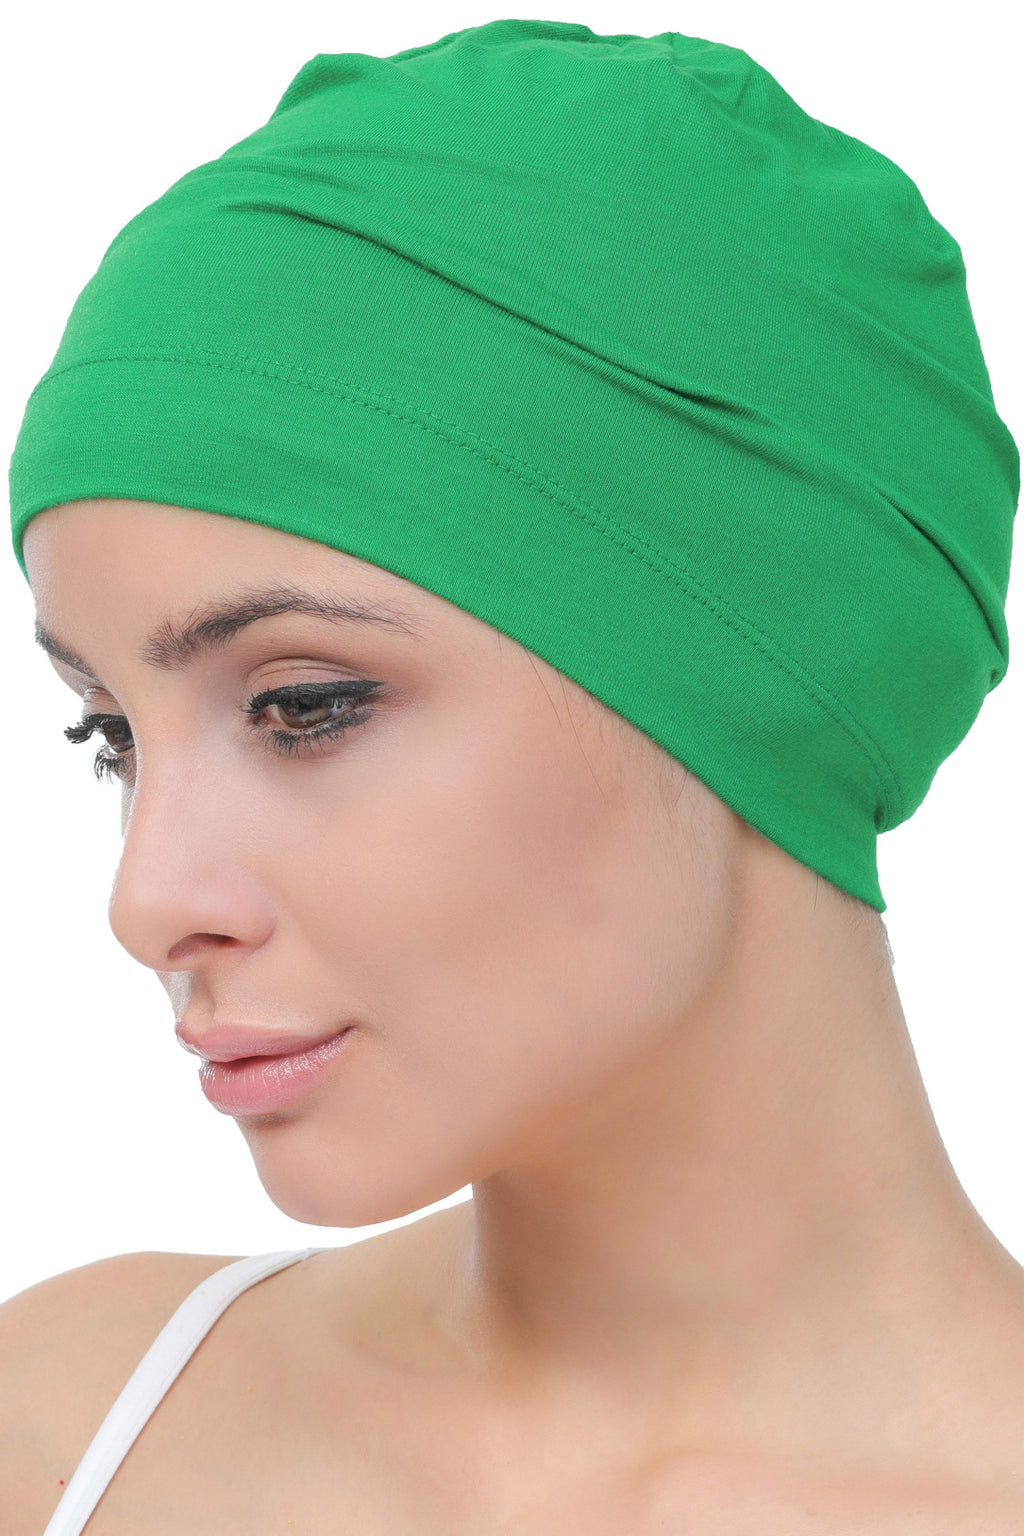 Deresina Unisex chemo sleep cap benetton green